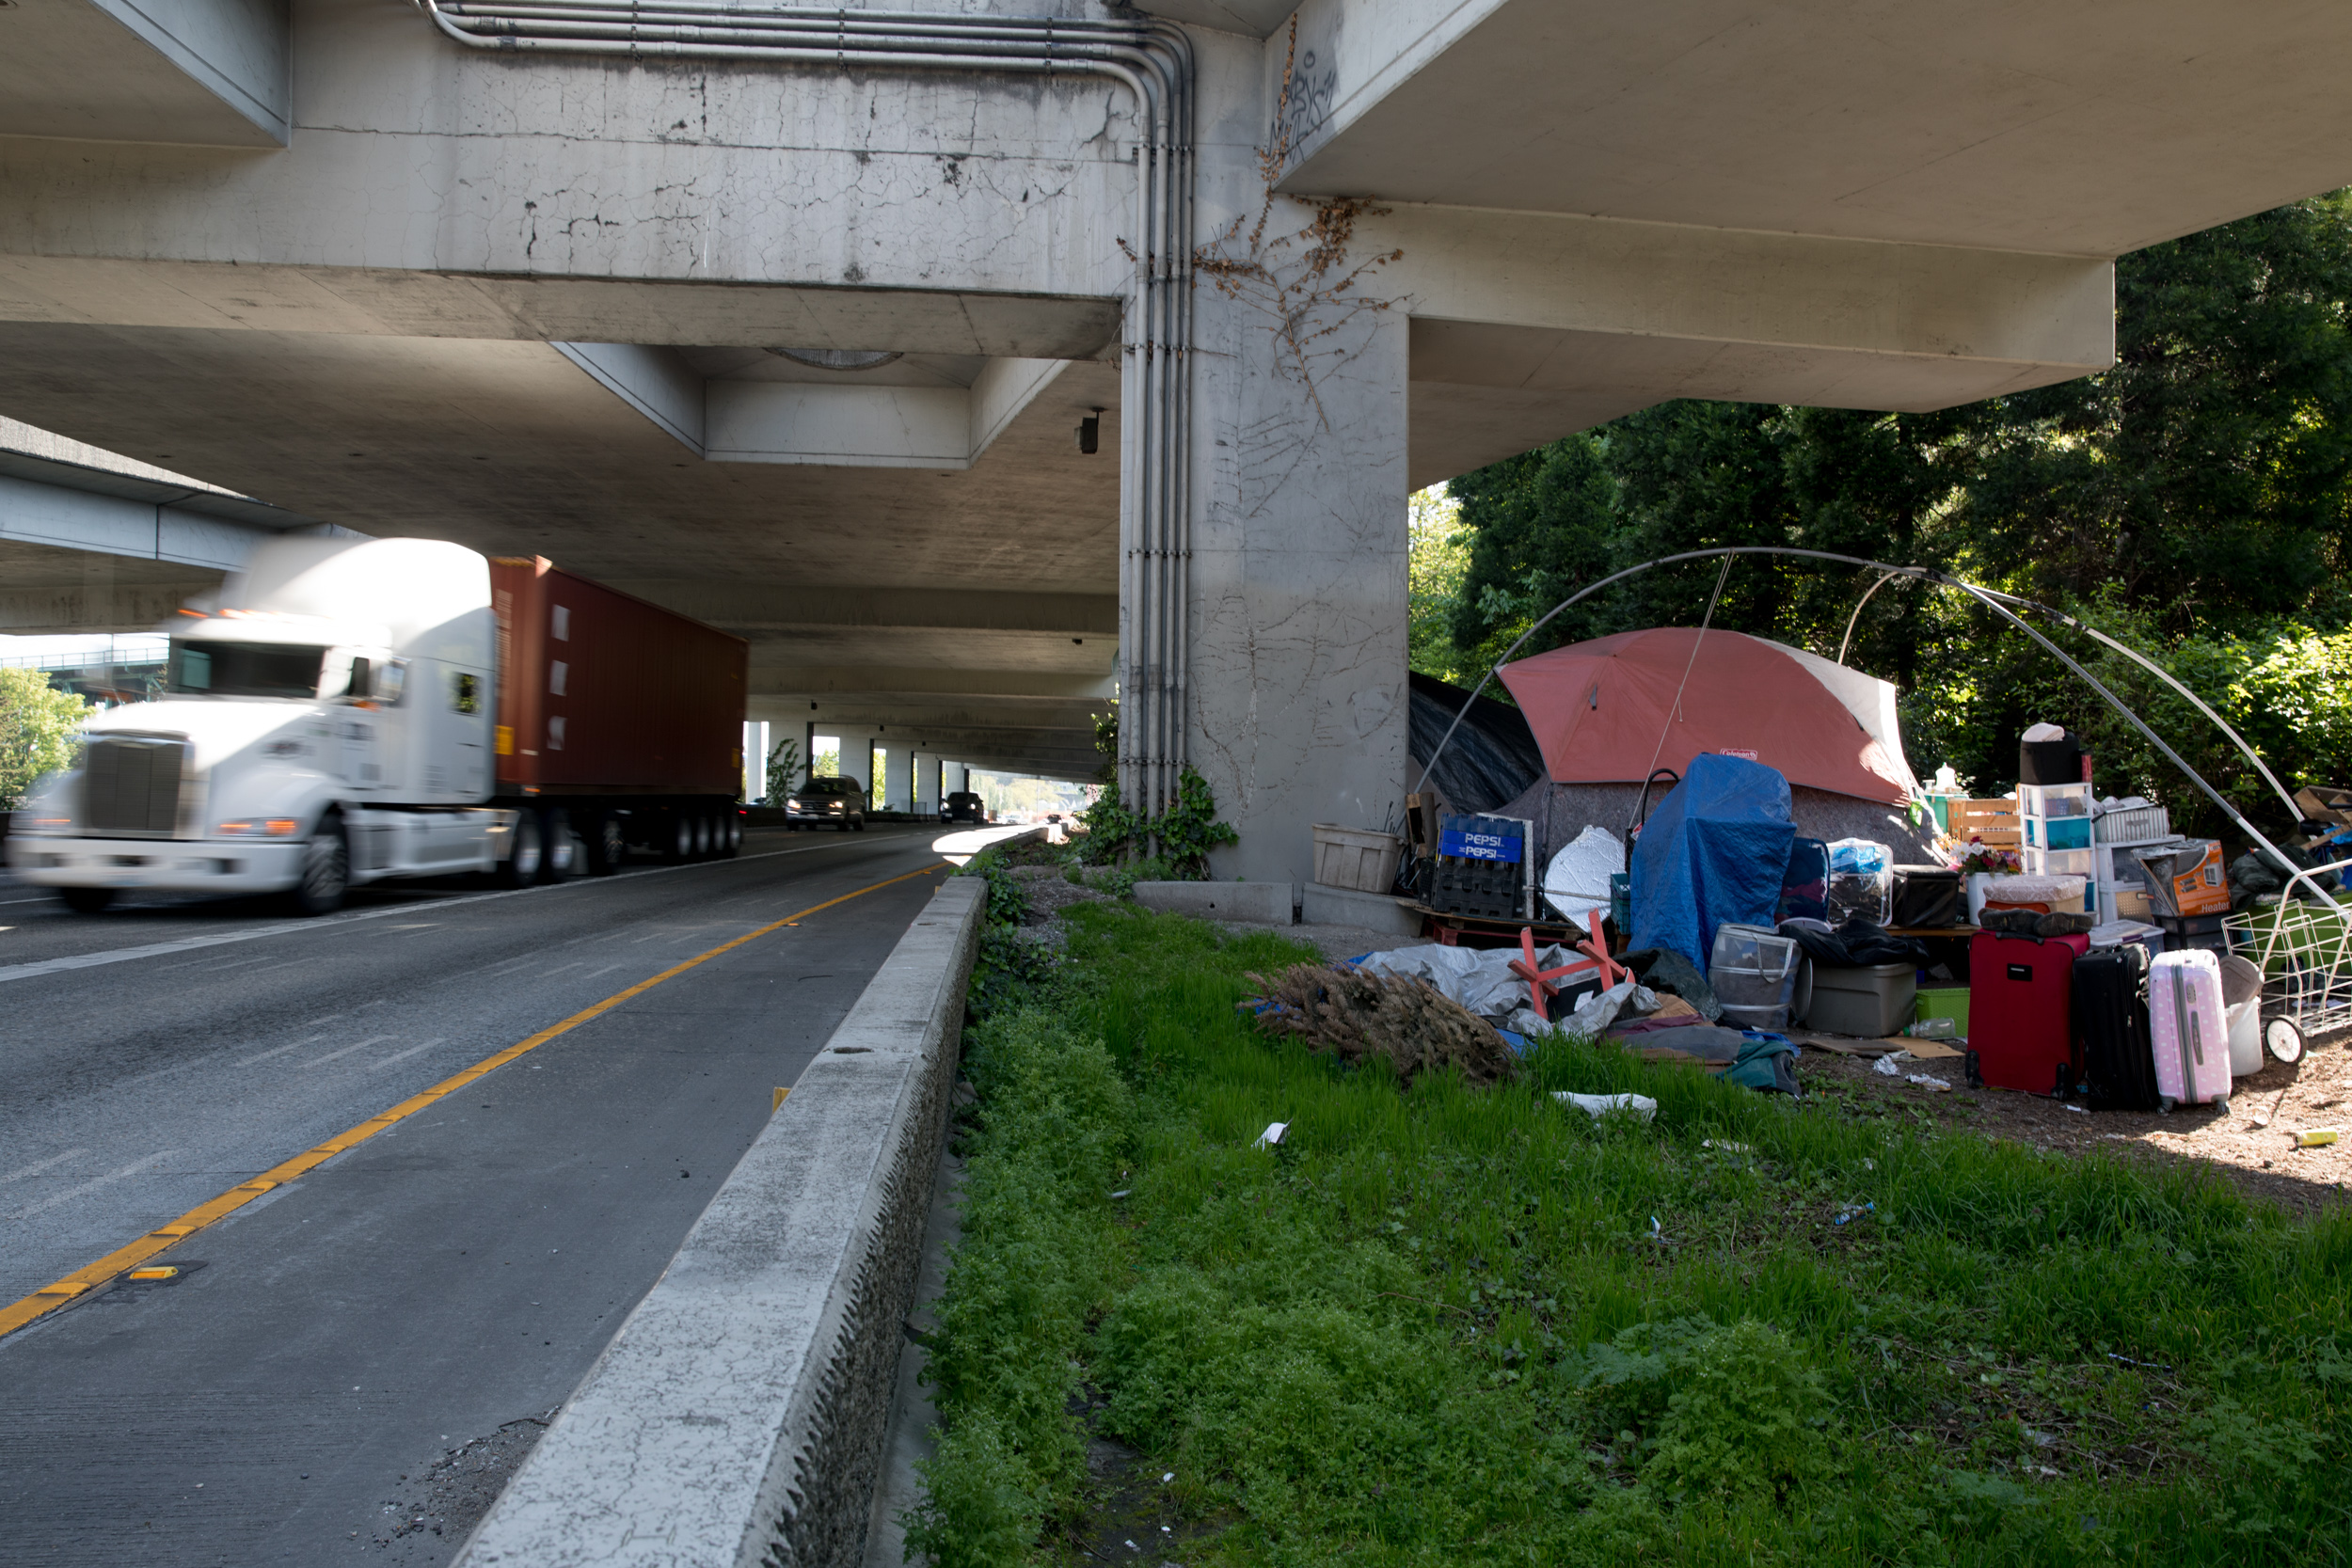 A homeless encampment, referred to as The Jungle, underneath freeway overpasses in Seattle.